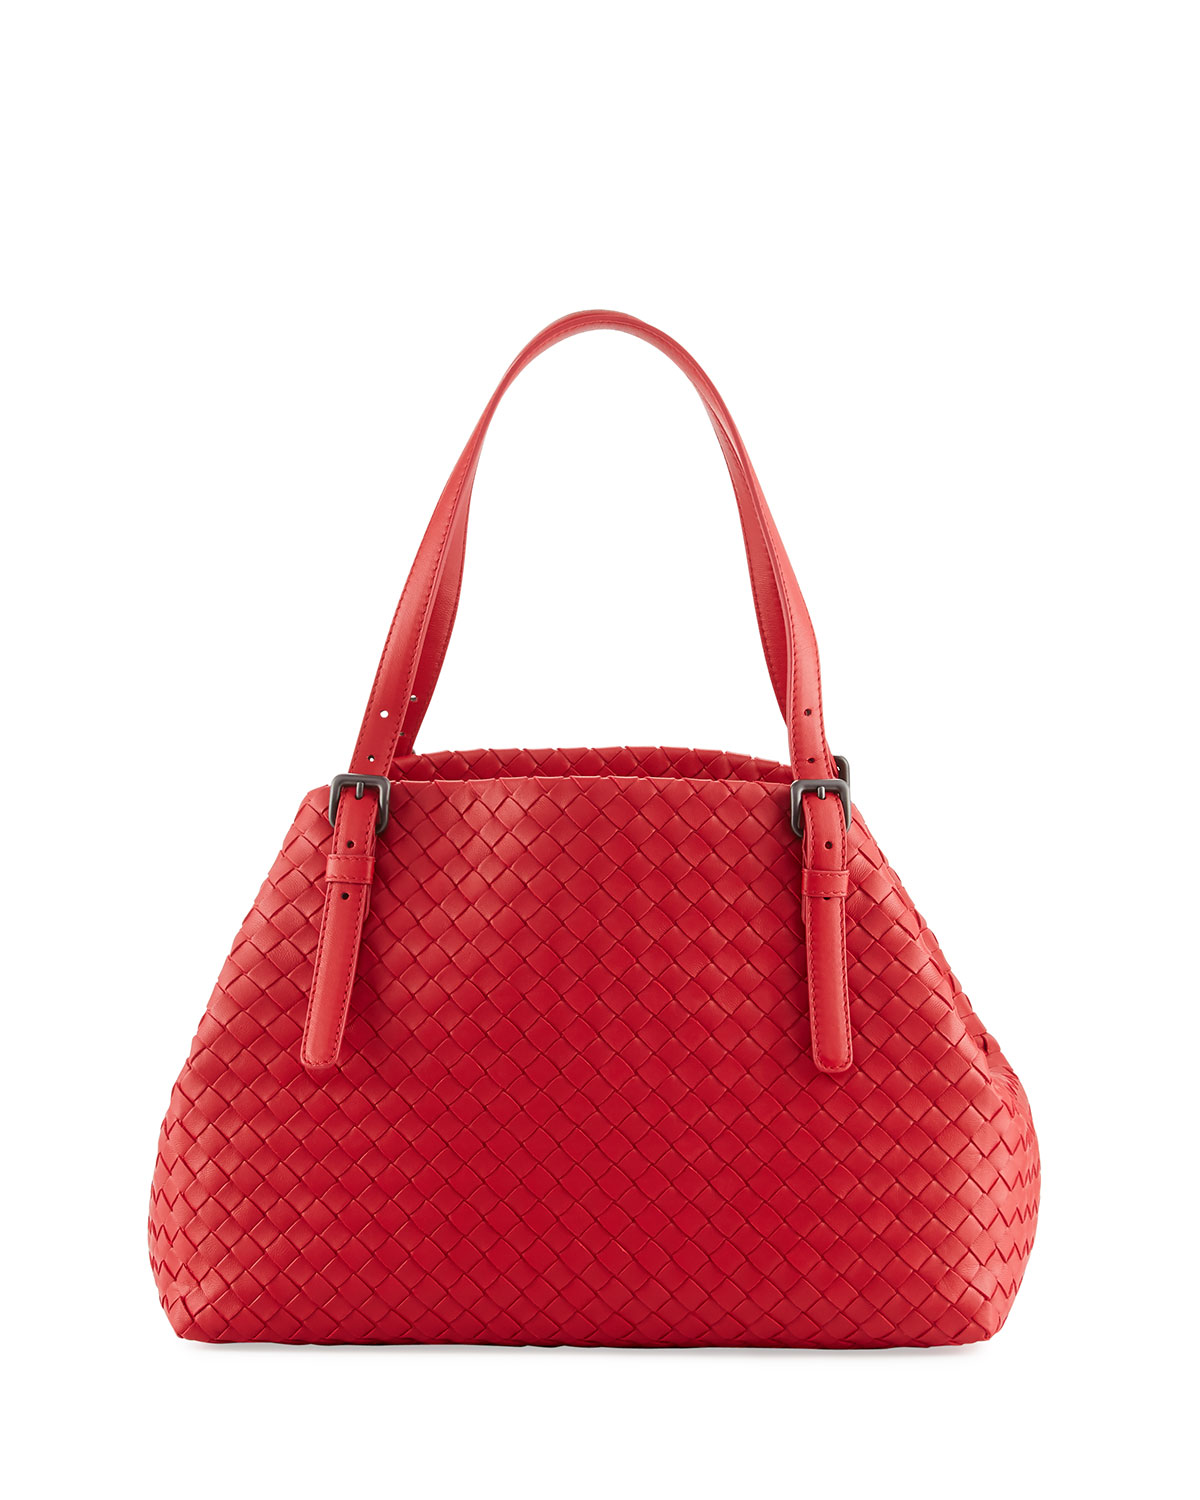 Bottega Veneta Medium Cesta Tote  f6835a0544e93